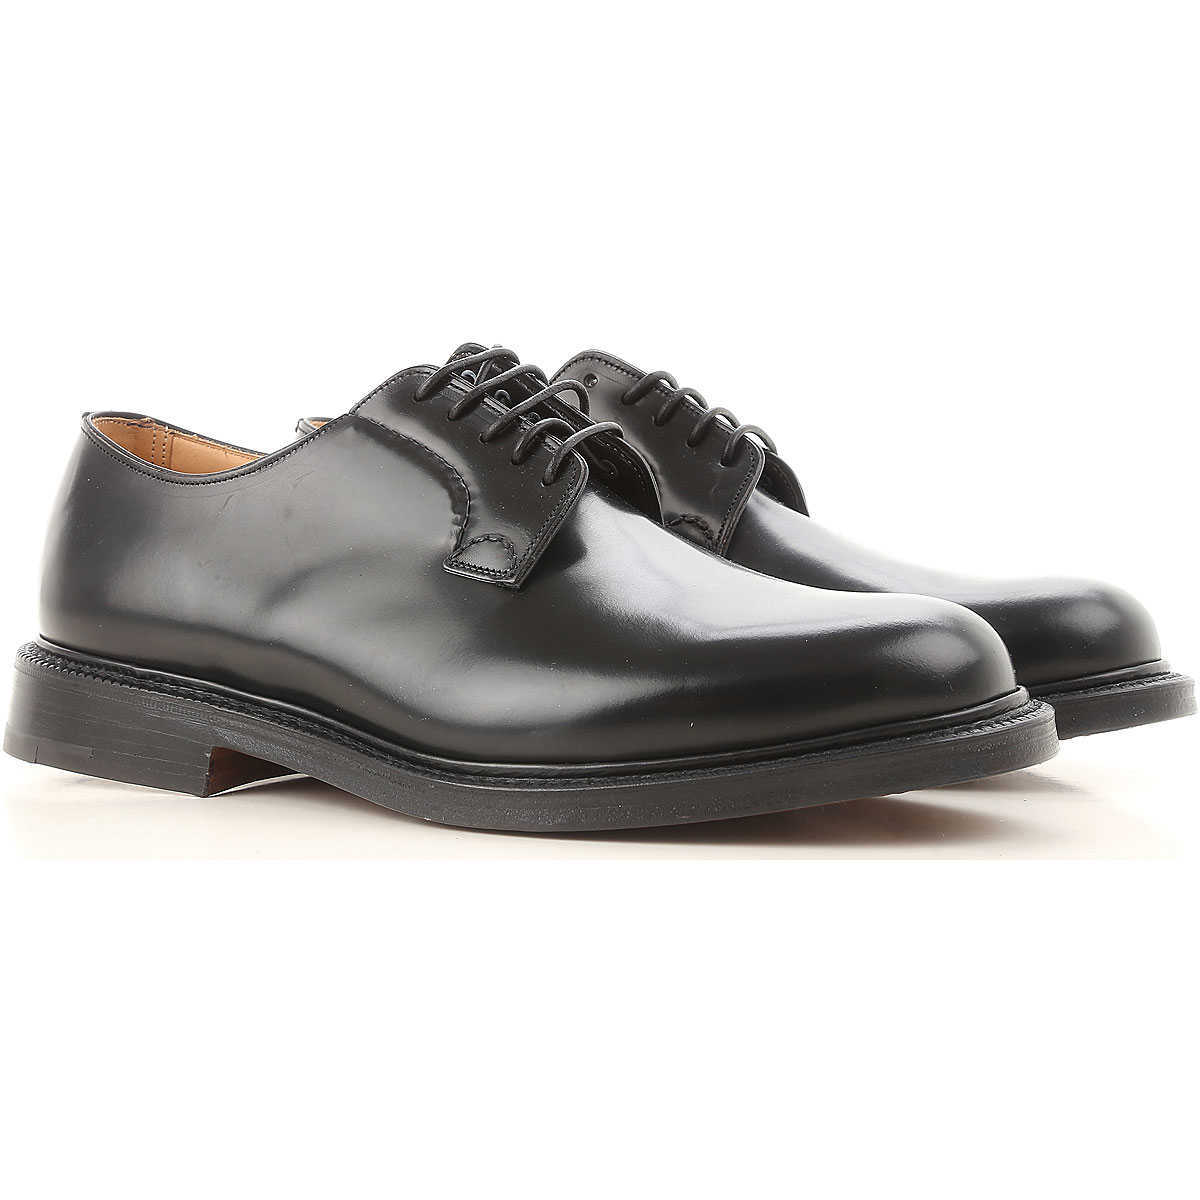 Church's Lace Up Shoes for Men Oxfords Derbies and Brogues On Sale SE - GOOFASH